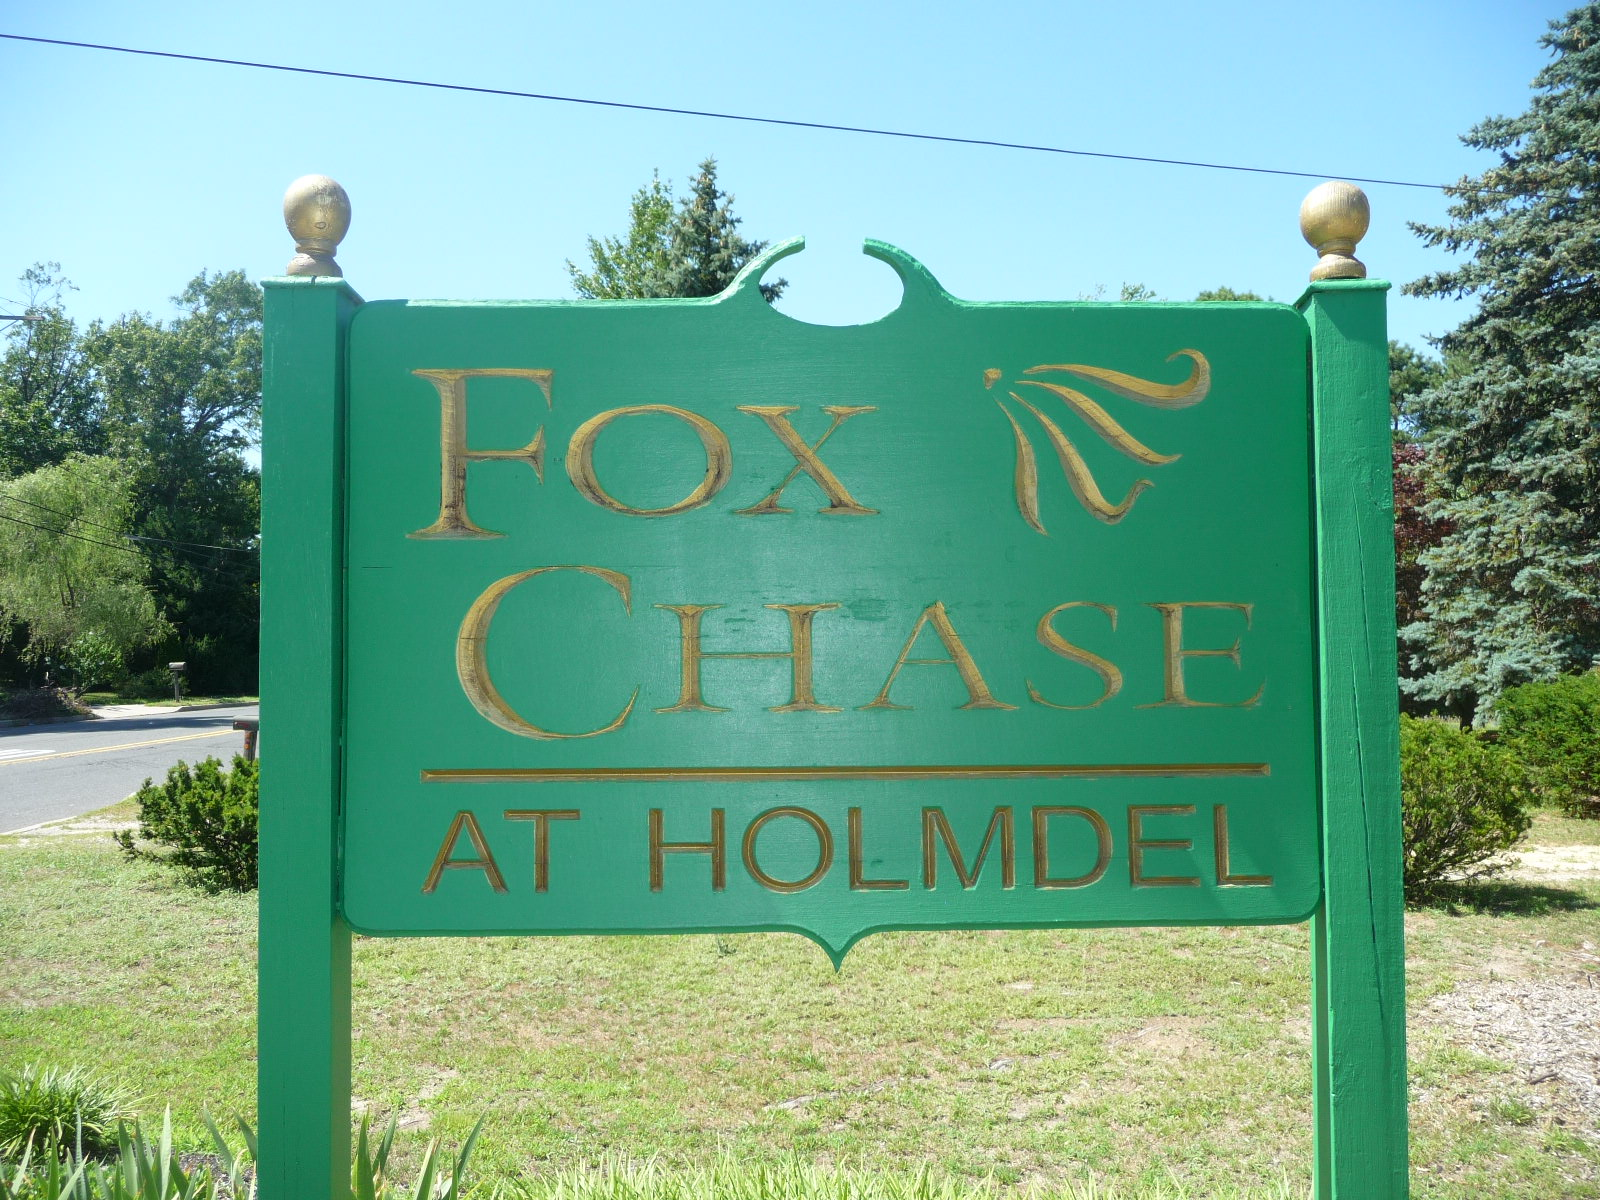 Fox Chase condos in Holmdel NJ are located right off of Laurel Avenue